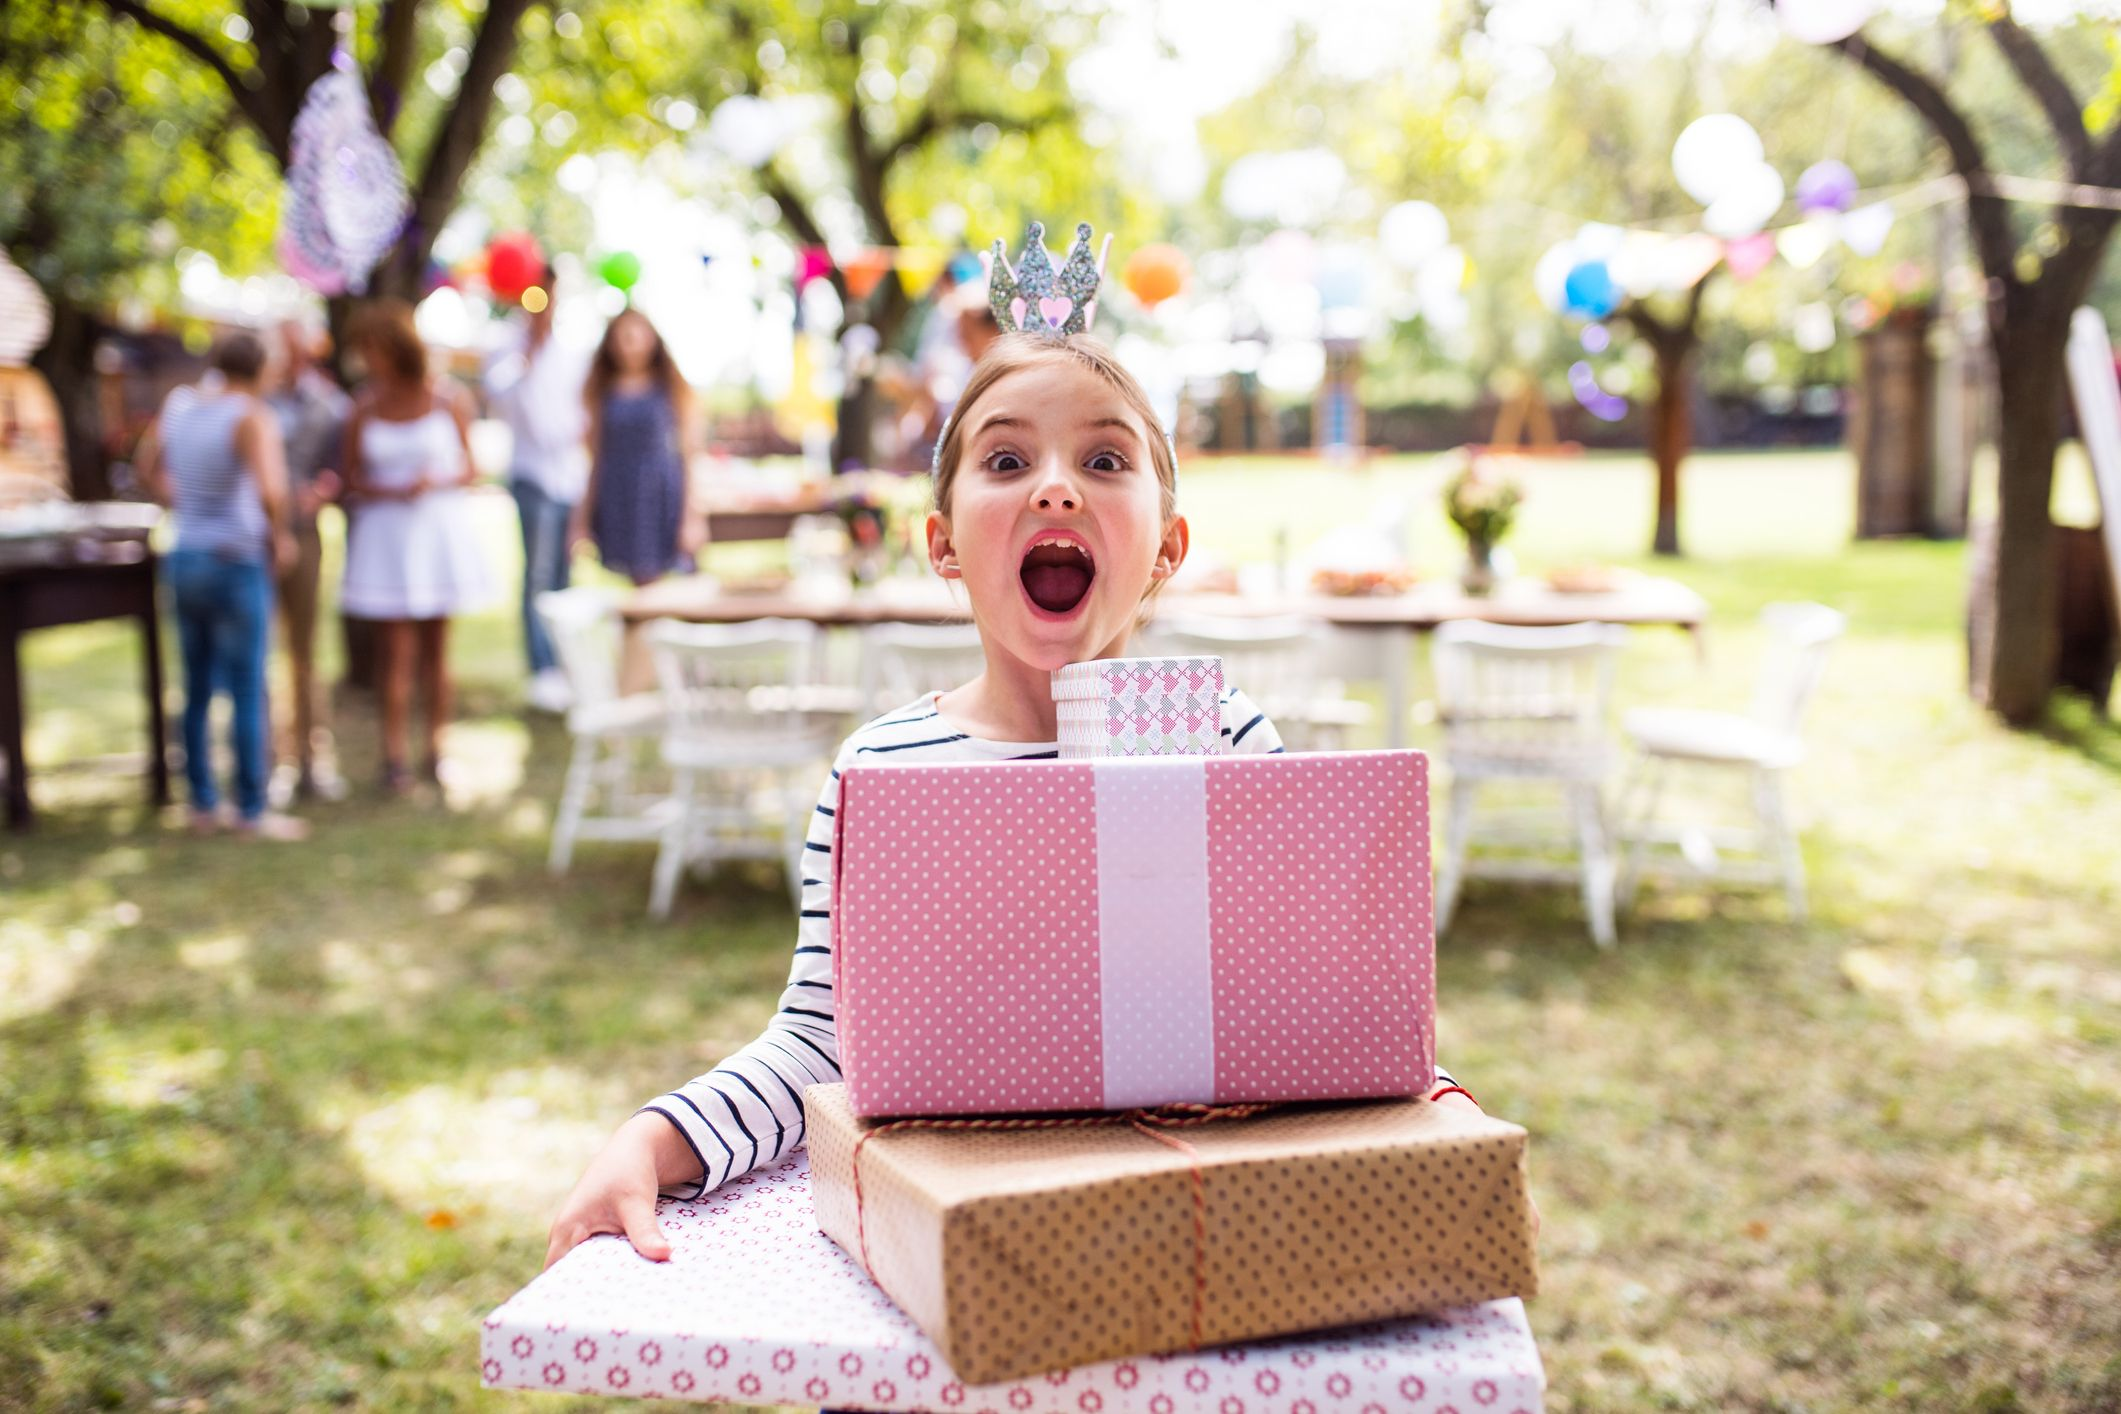 20 Best Birthday Party Ideas for Girls - Birthday Themes for